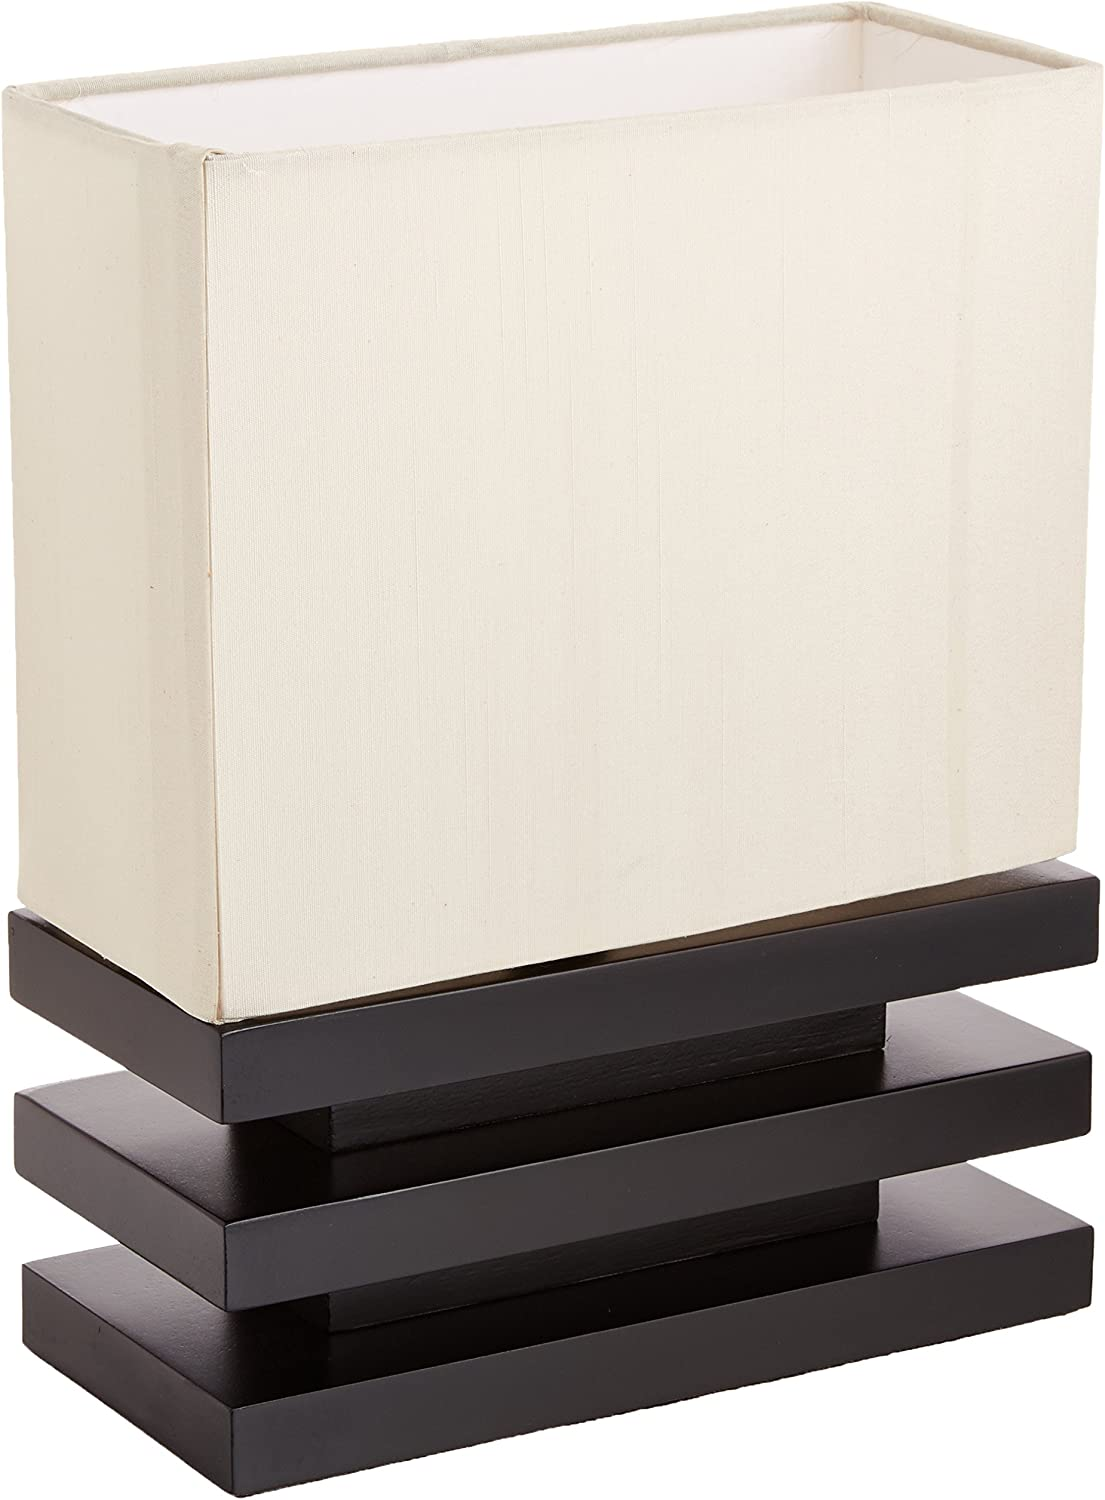 Coaster Home Furnishings 900167 Coaster Black Wood Table Lamp with Beige Fabric Shade